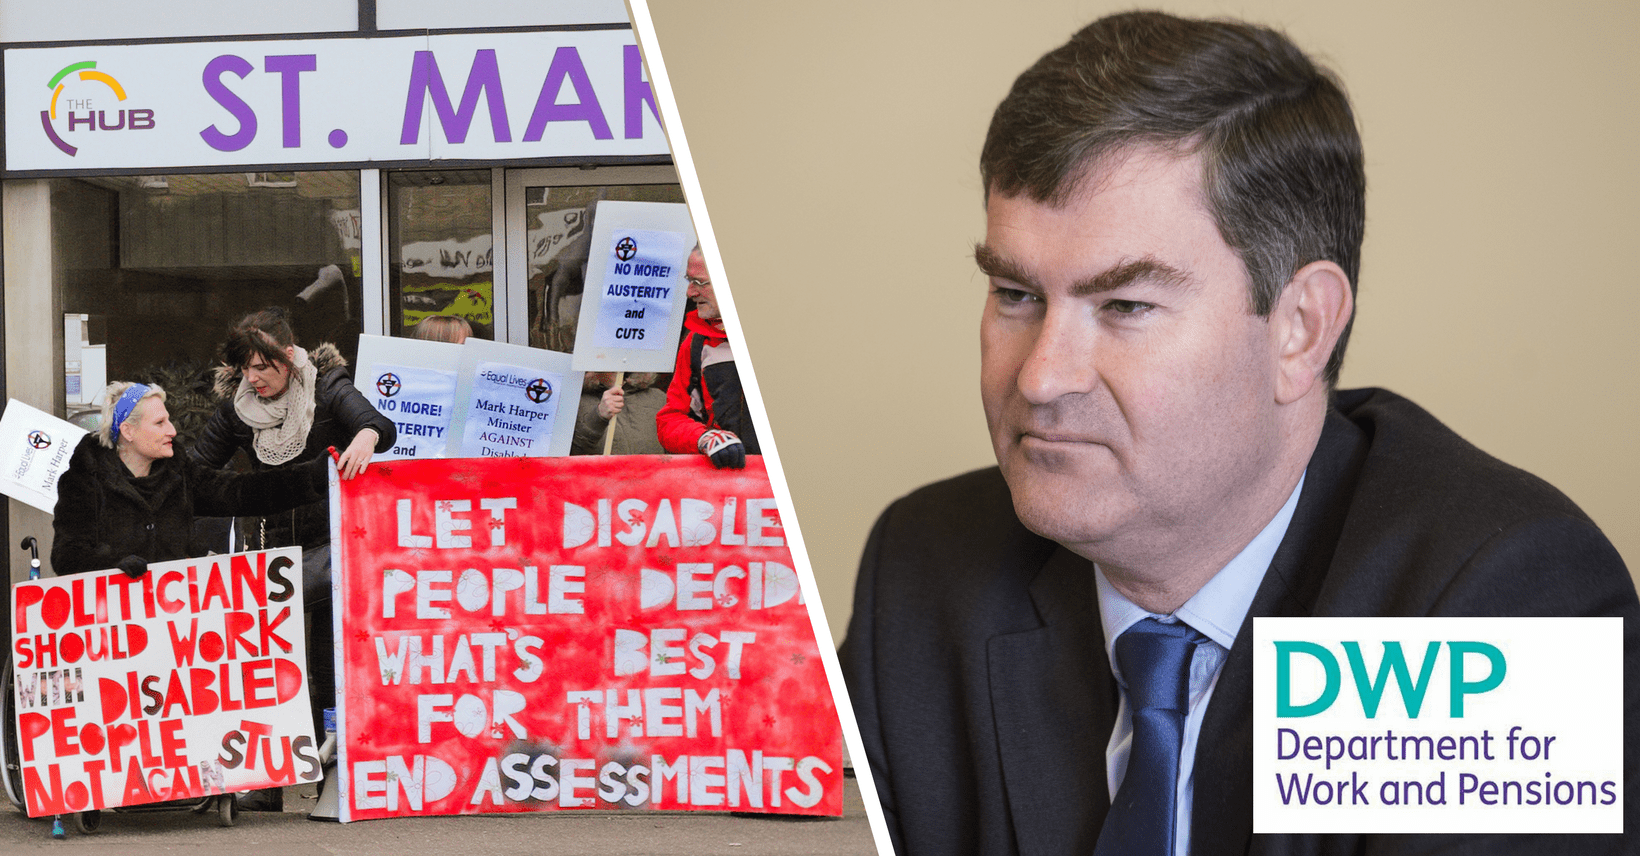 Campaigners just forced the Tories to scrap a target for kicking disabled people off benefits